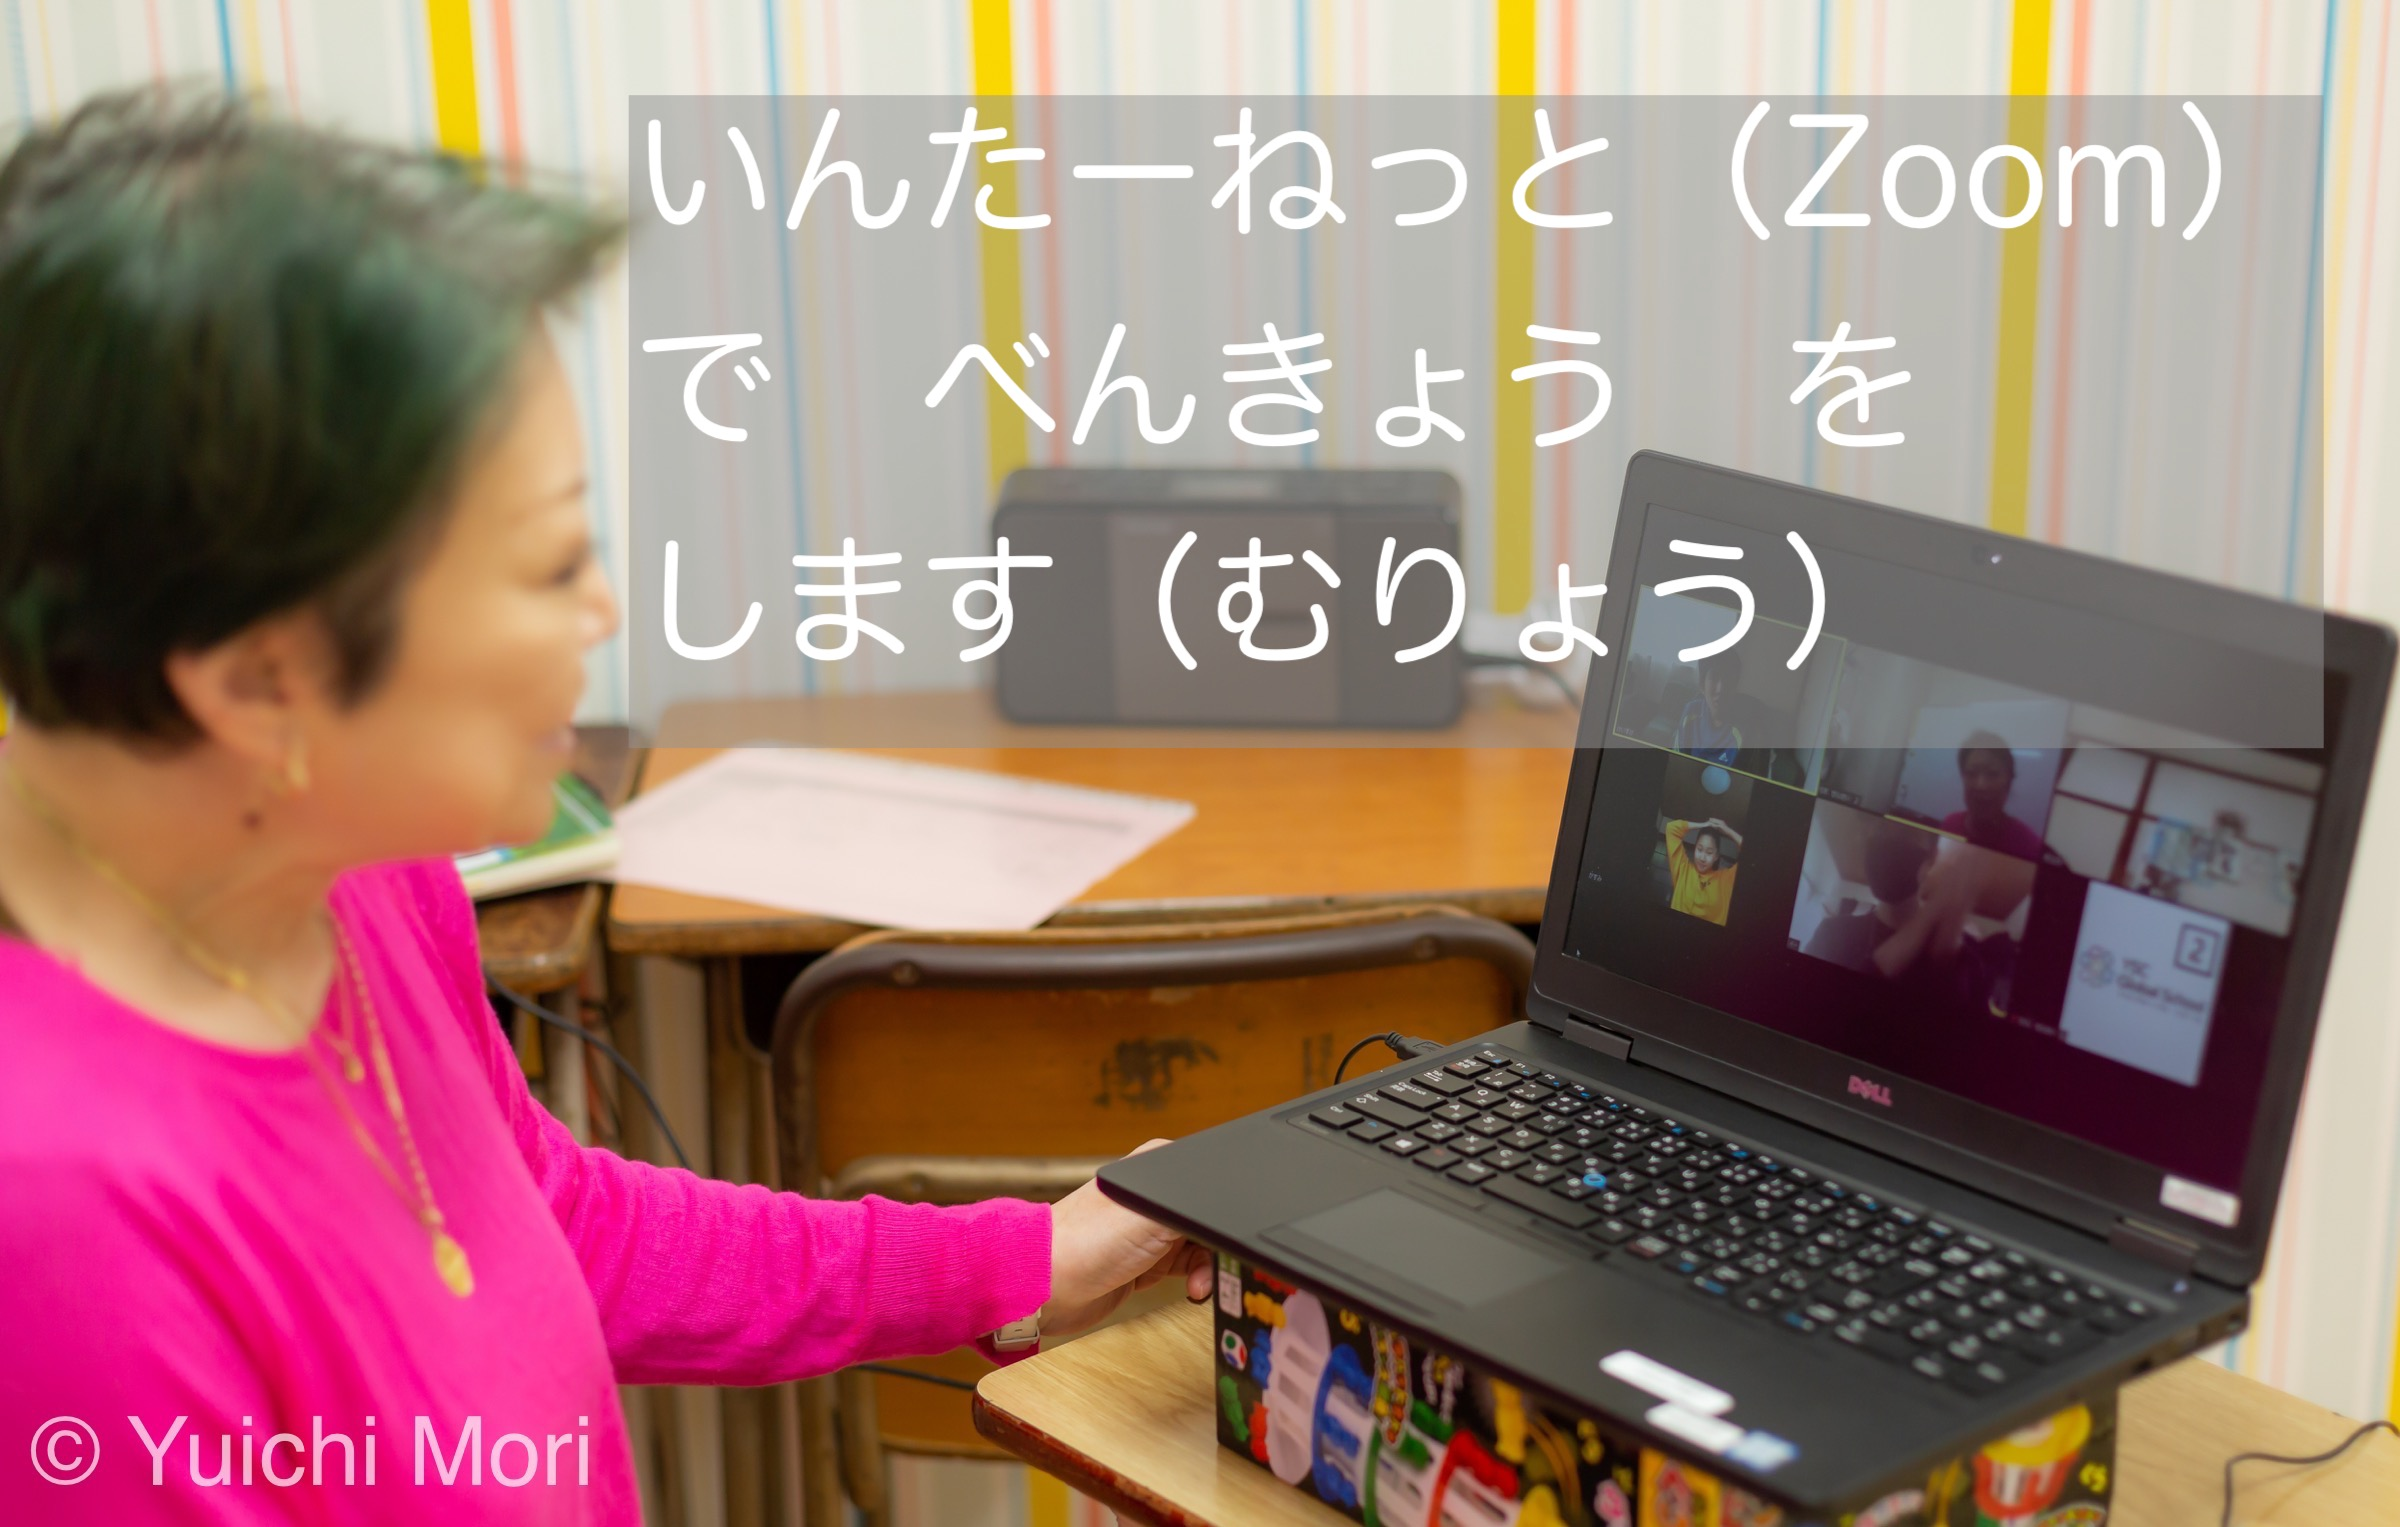 Zoom で べんきょう を おしえます。YSC Global School: Free Online Learning Support for Foreign Children in Japan